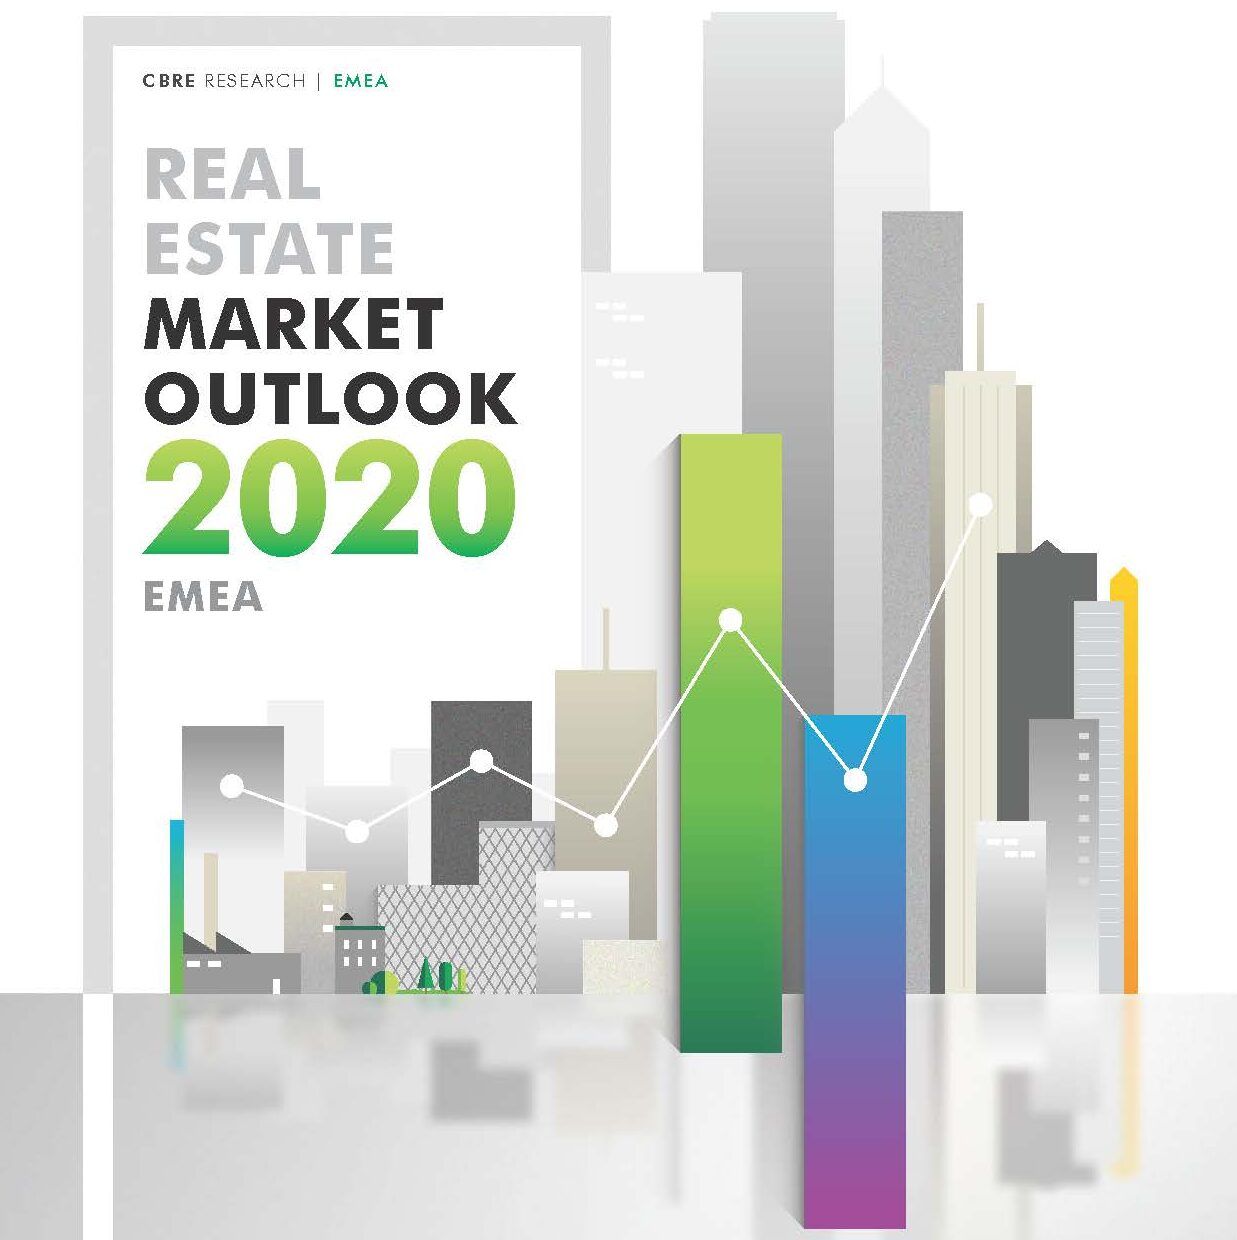 Real Estate Market Outlook 2020